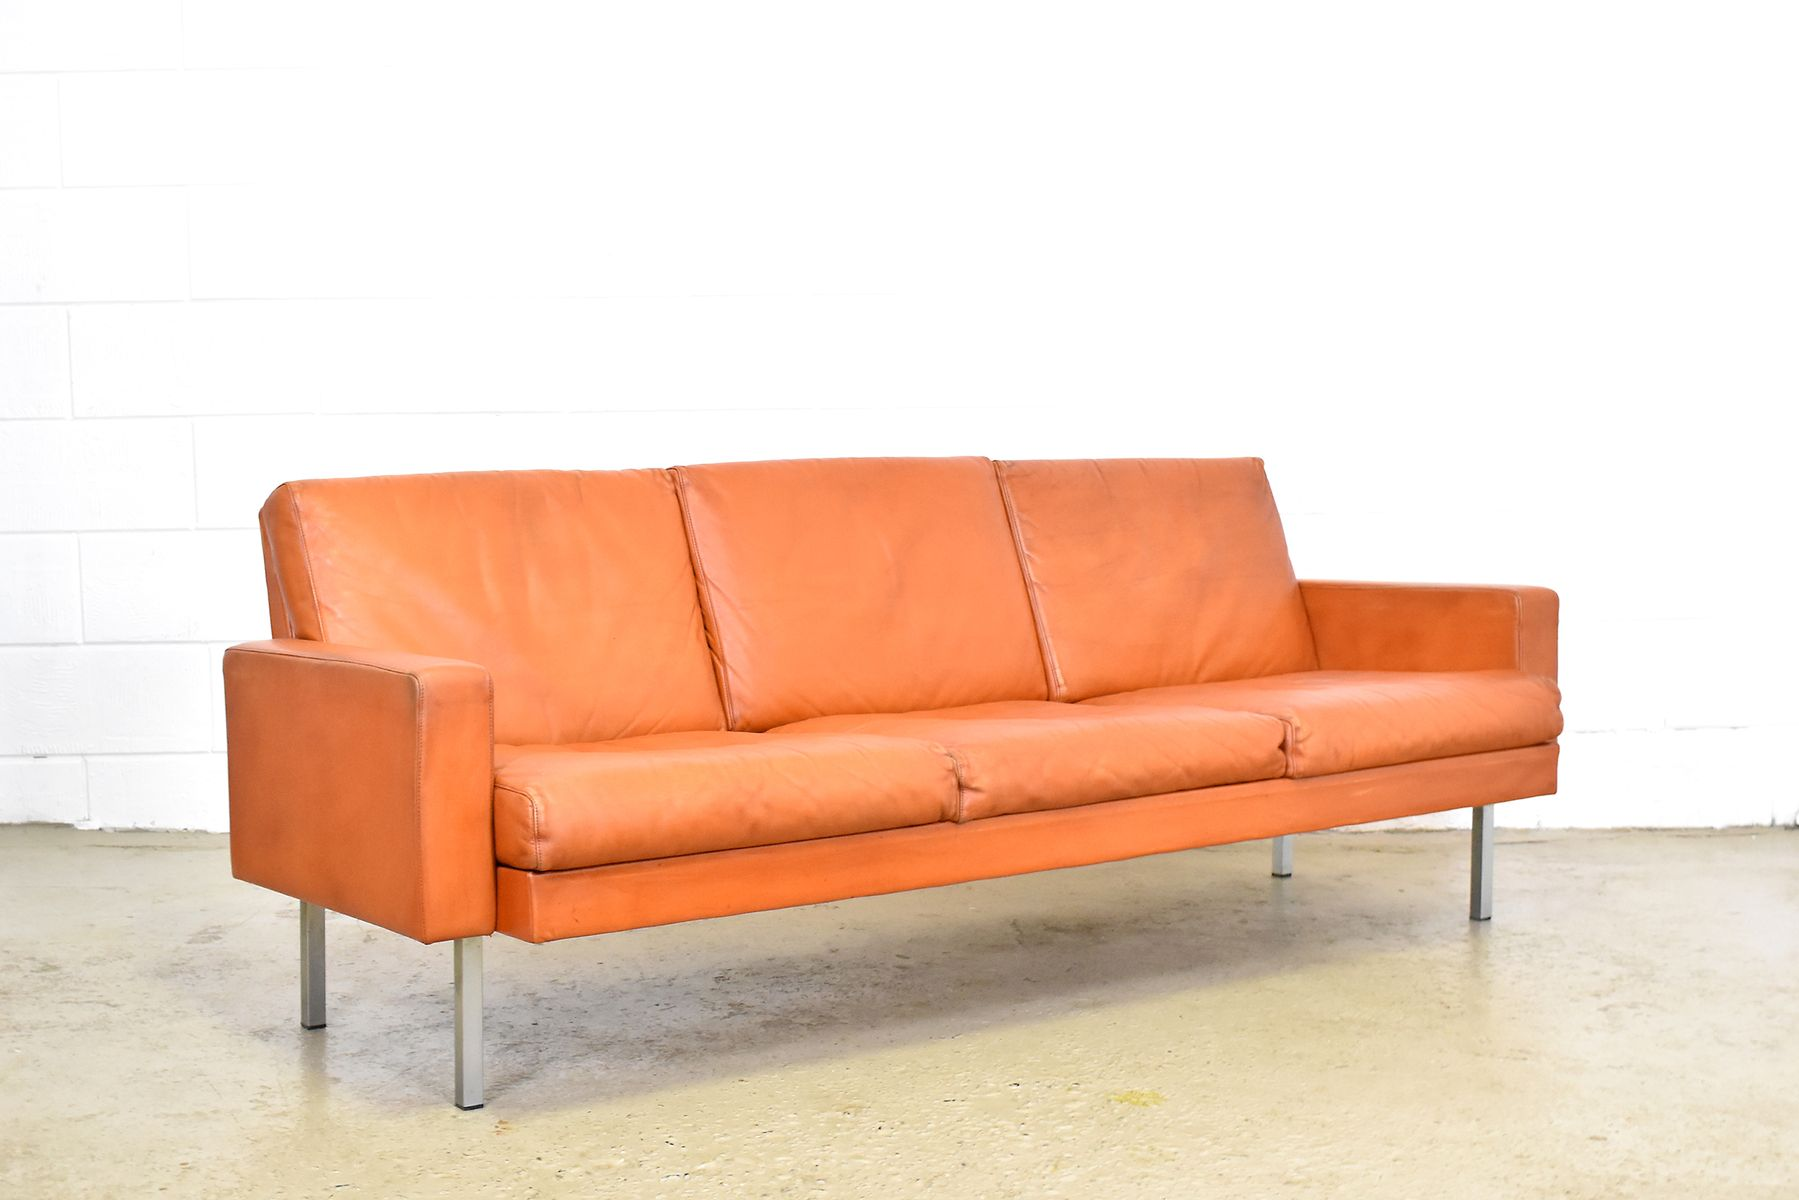 cognac leather sofa by martin visser for t spectrum 1960s for sale at pamono. Black Bedroom Furniture Sets. Home Design Ideas